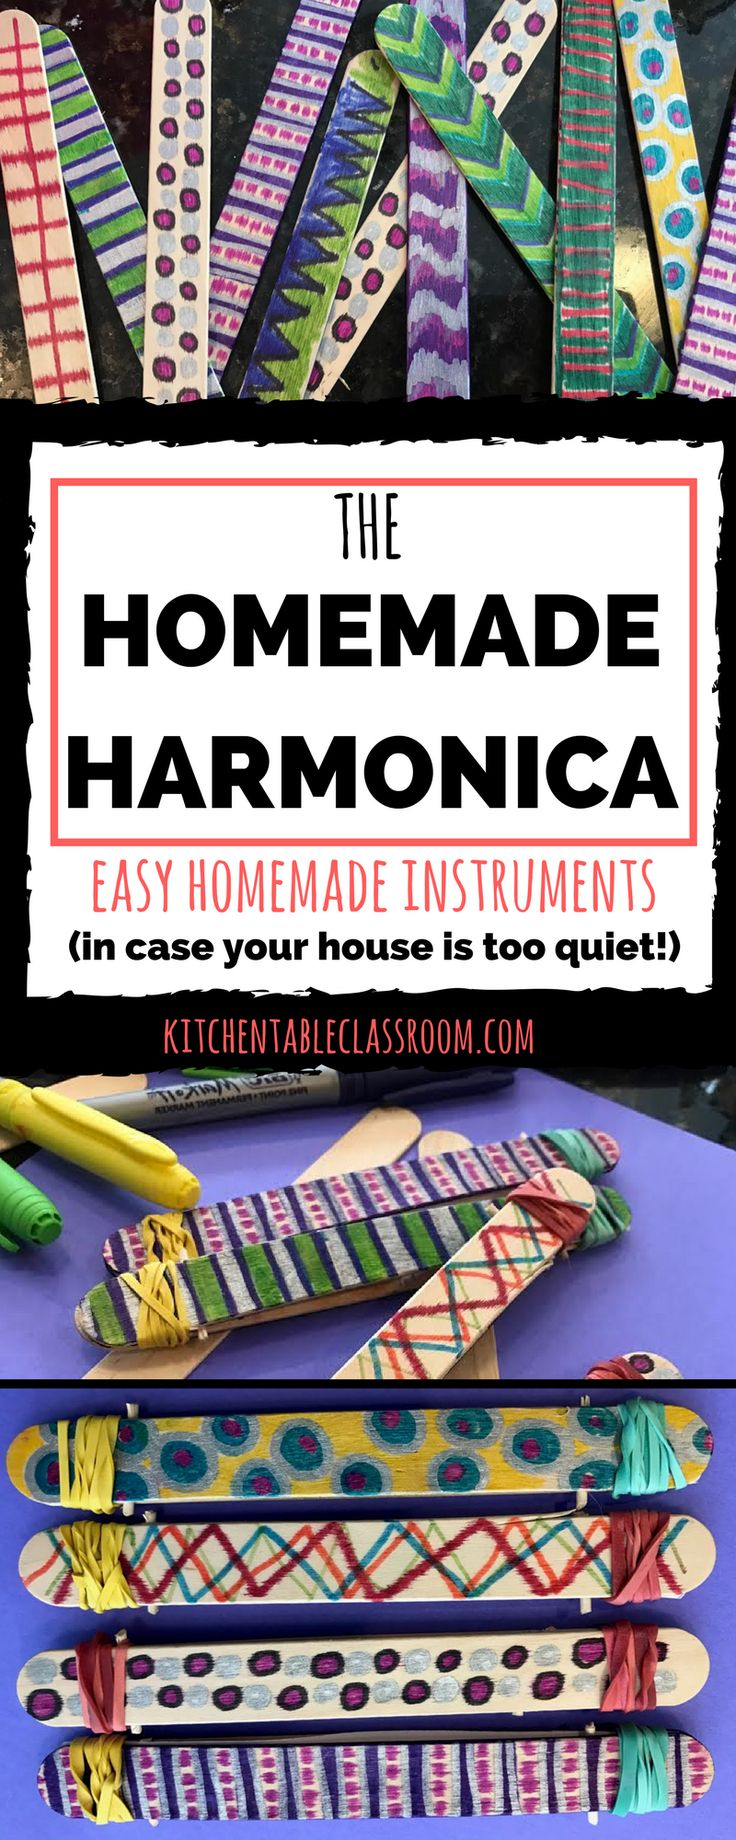 This homemade harmonica is a blast if you don't mind a little background noise. And if you do kick the kids and the harmonicas outside! They are a hoot!